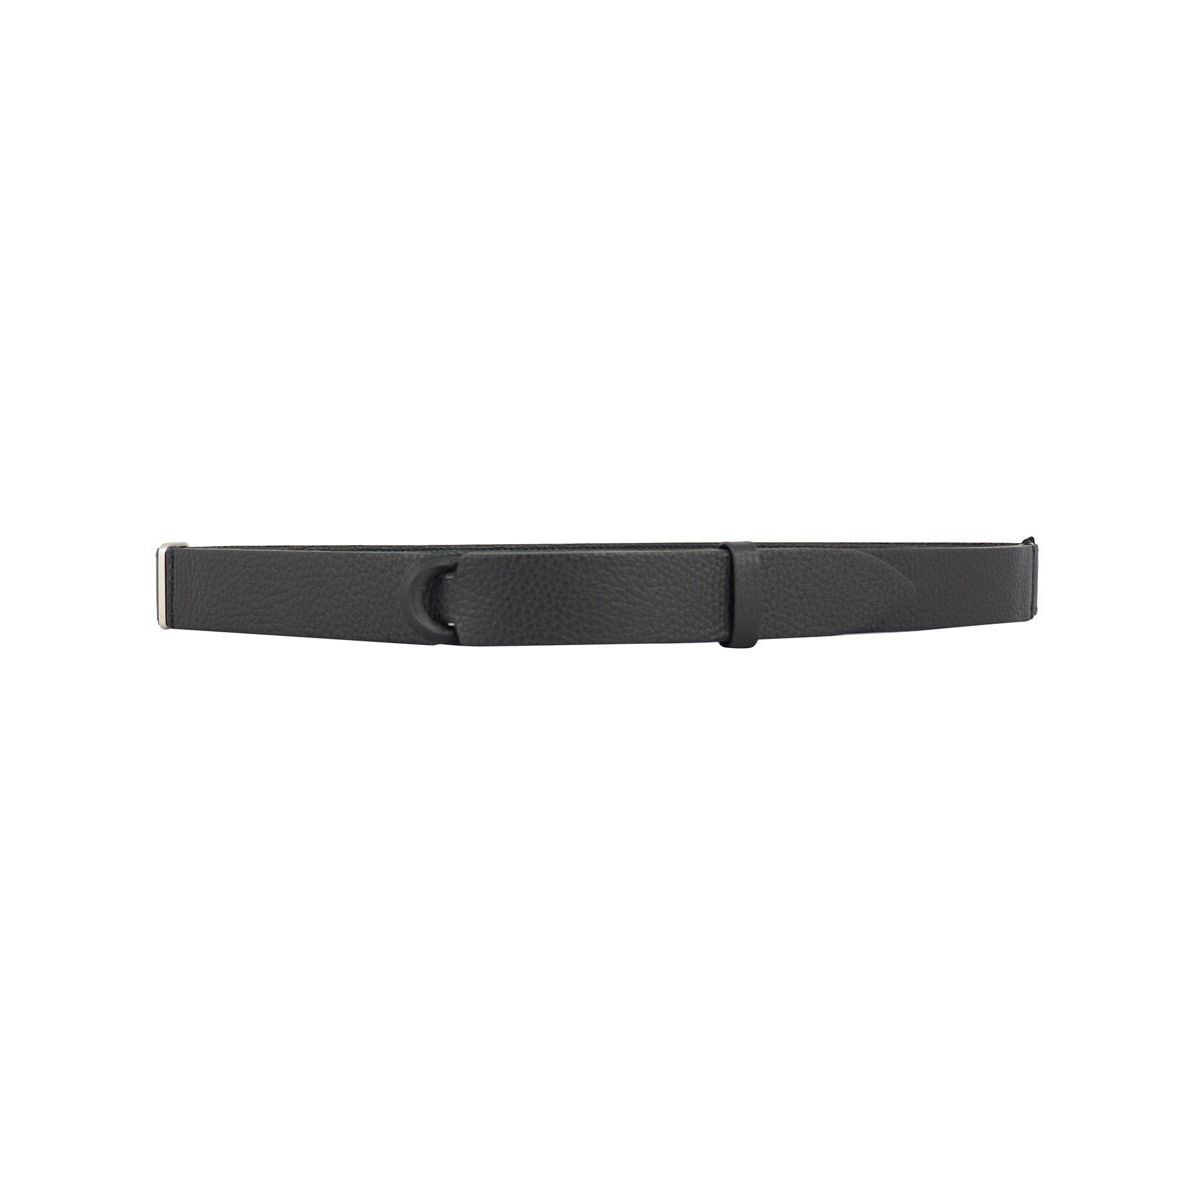 NO BUCKLE belt in hammered leather Black Orciani